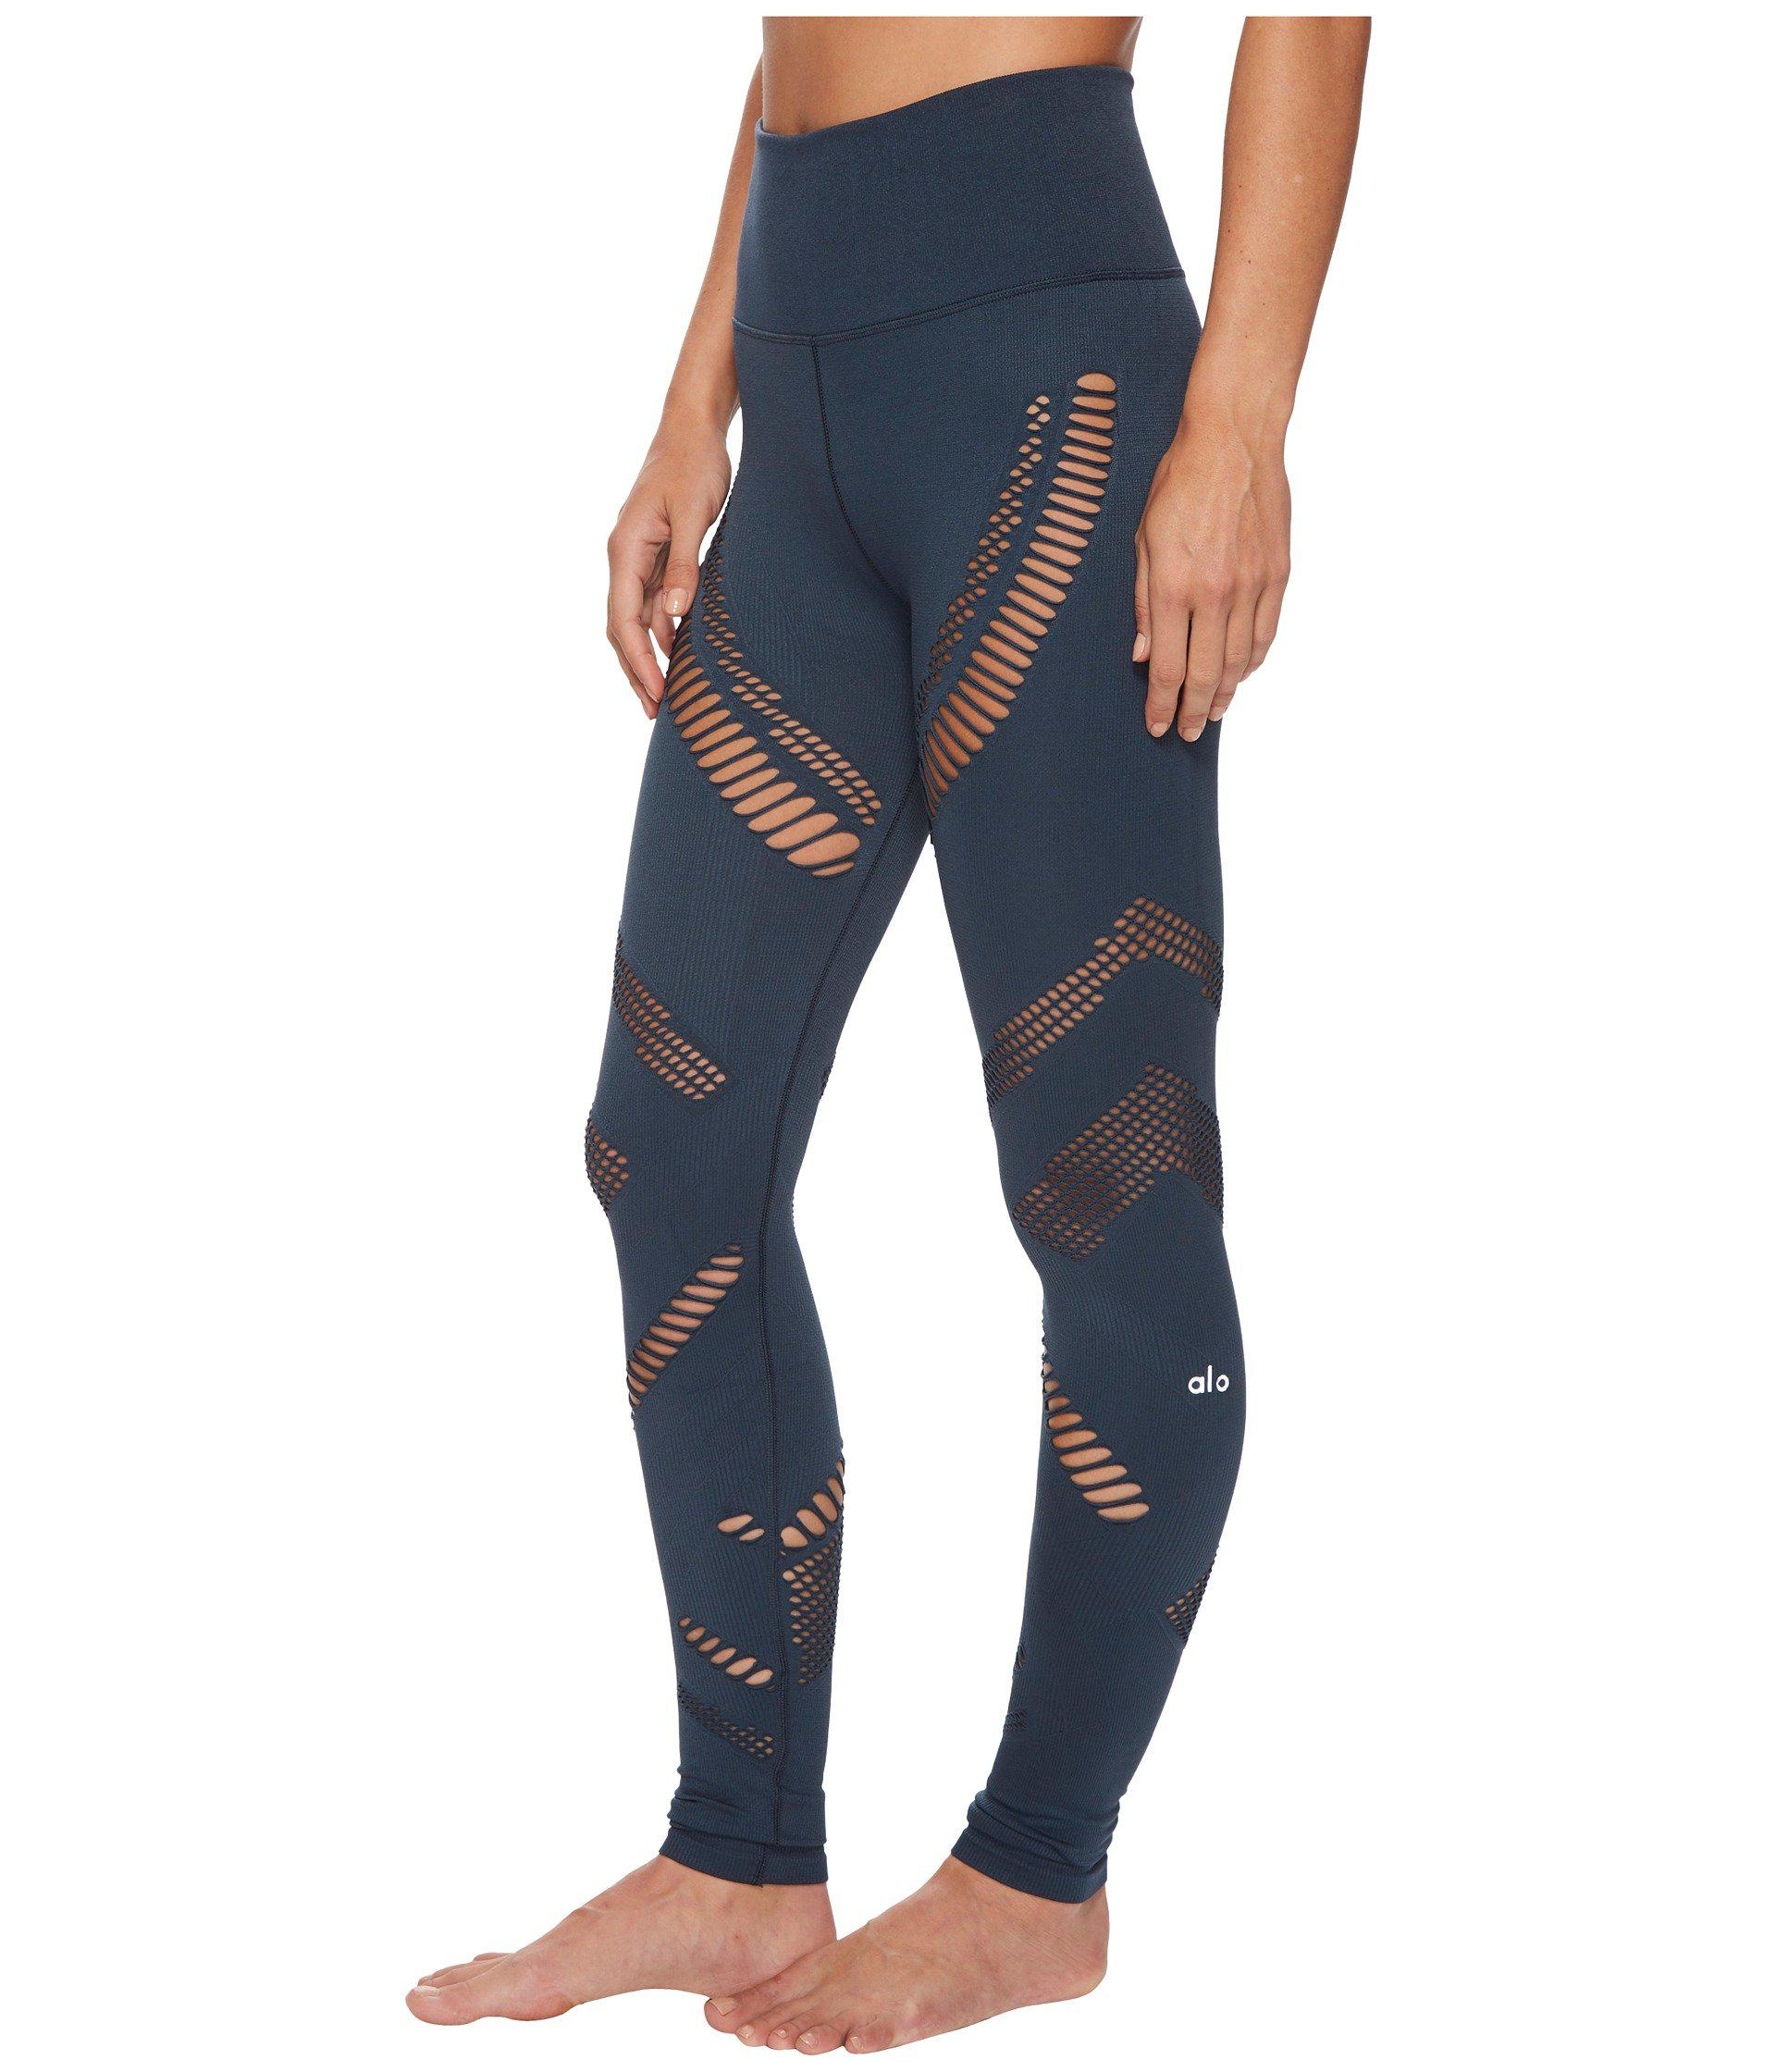 27b809eb4a Alo Yoga High-waist Seamless Radiance Leggings (black) Women's ...